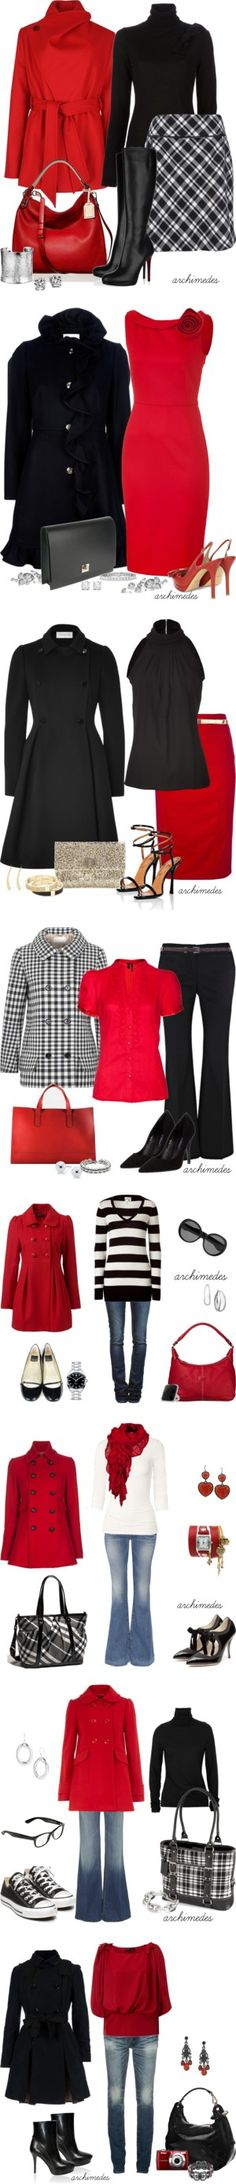 """Red and White and Black"".... day, night, work wear, weekend"